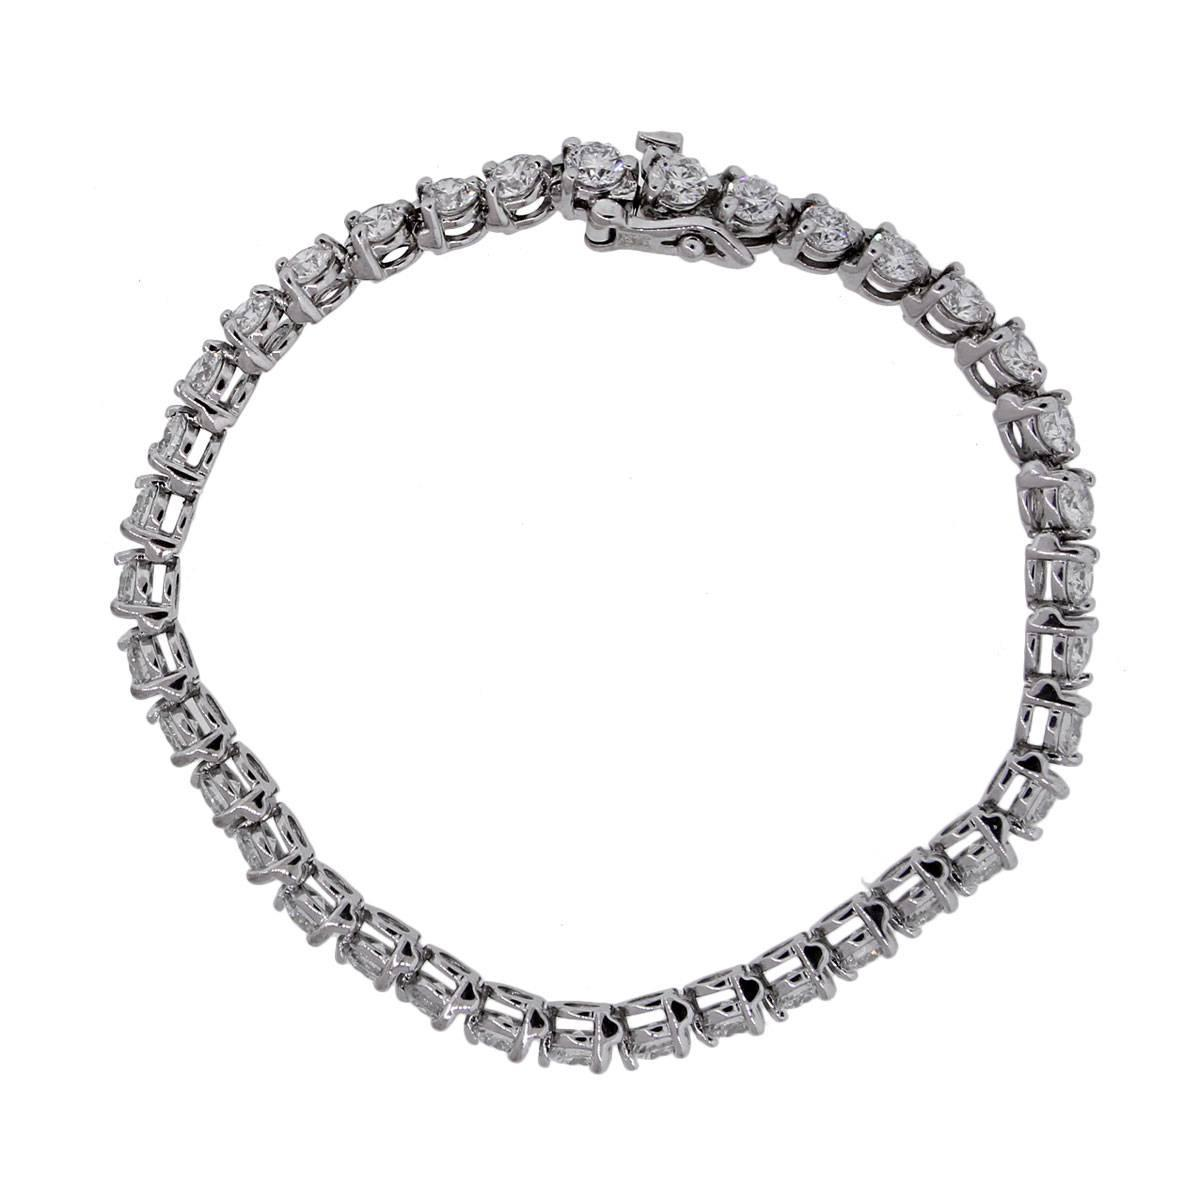 7 75 Carats Diamond Gold Tennis Bracelet For Sale At 1stdibs